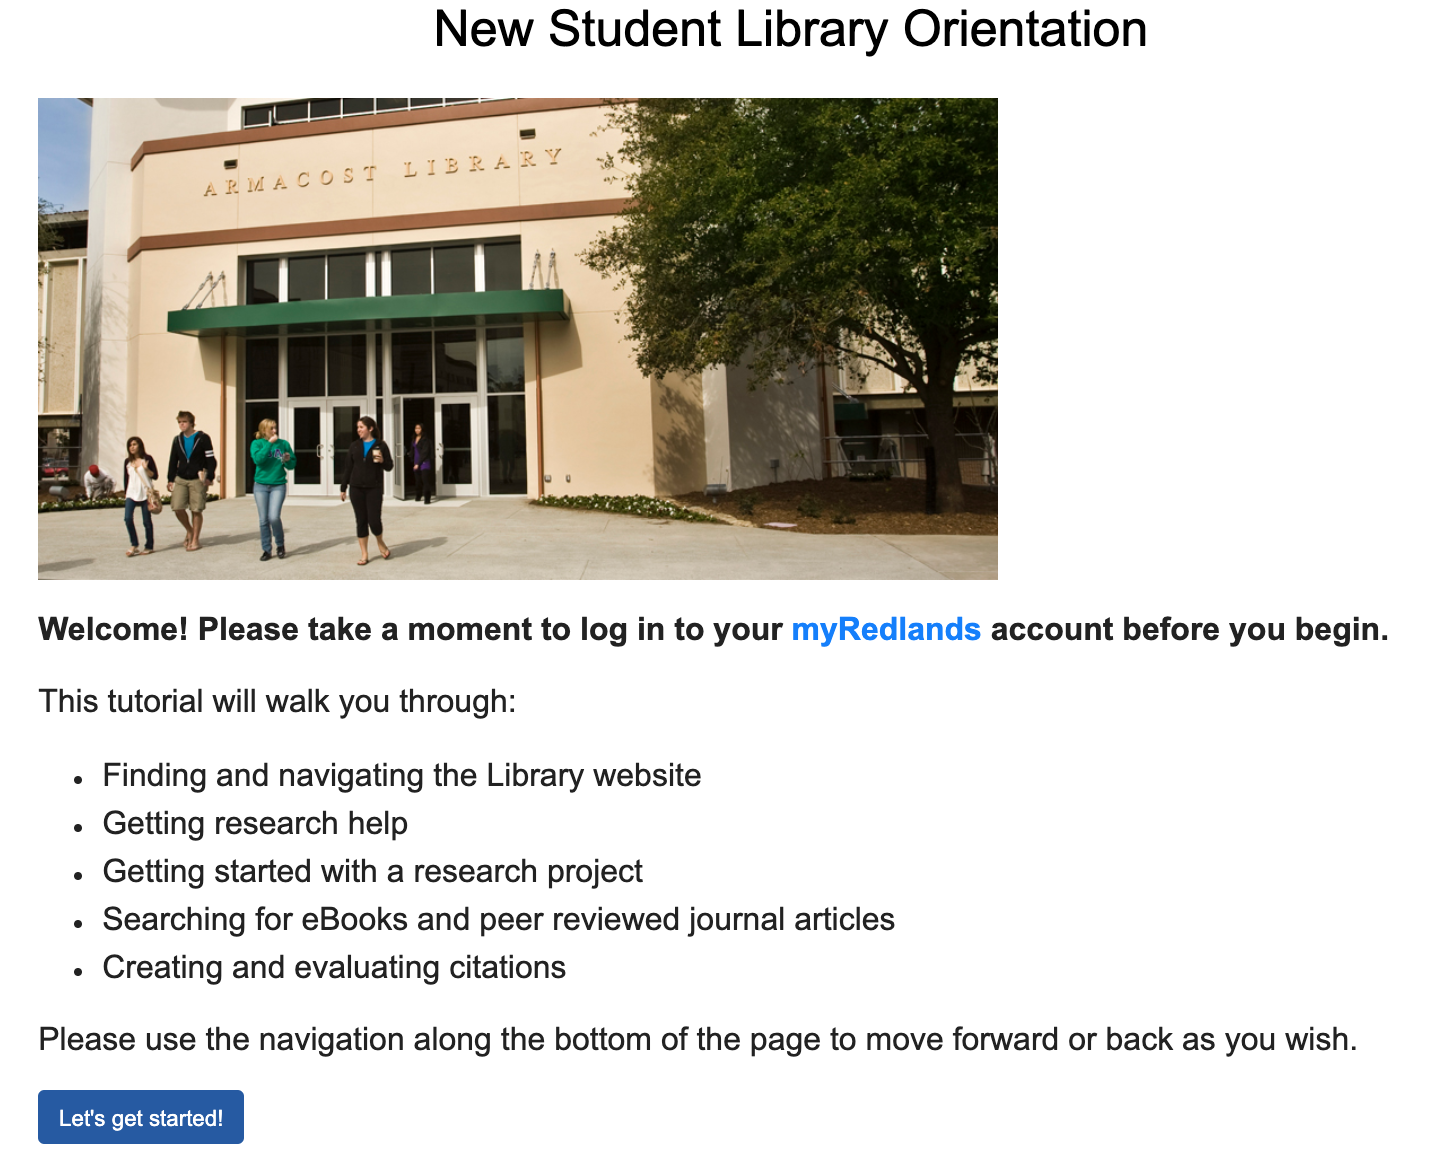 Hyperlinked screenshot of the New Student Library Orientation